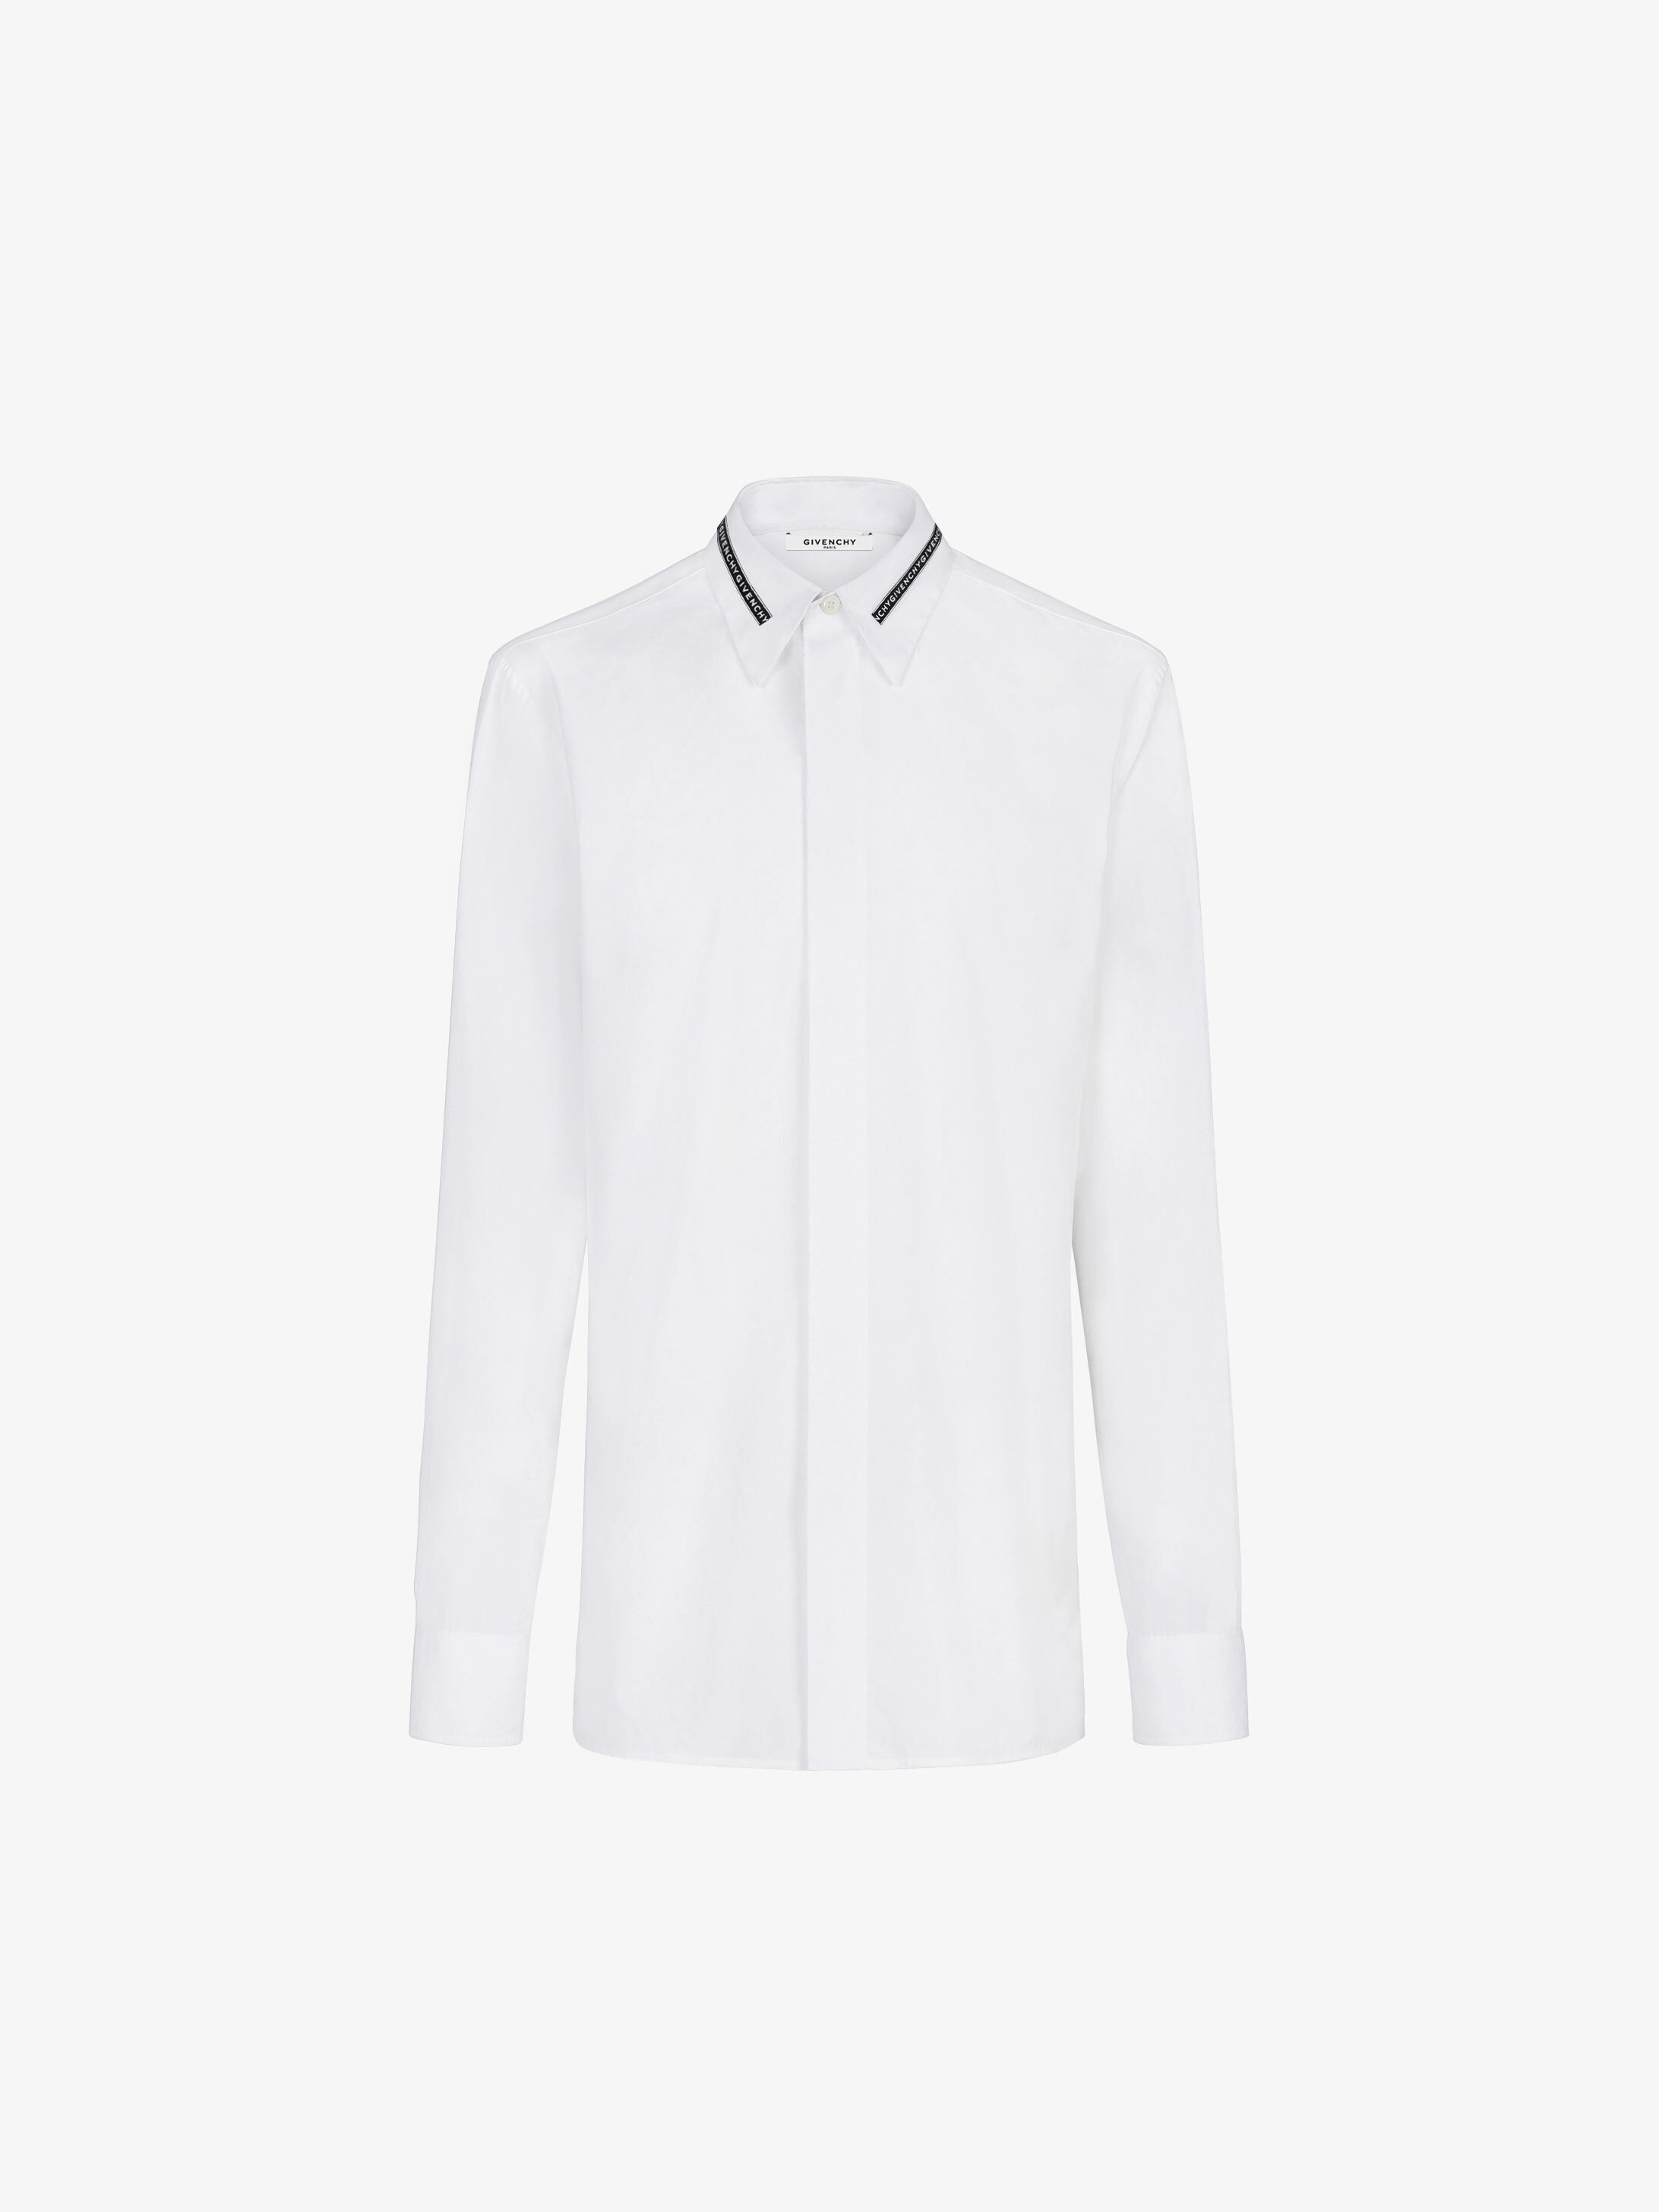 af172433693f7 Men s Shirts collection by Givenchy.